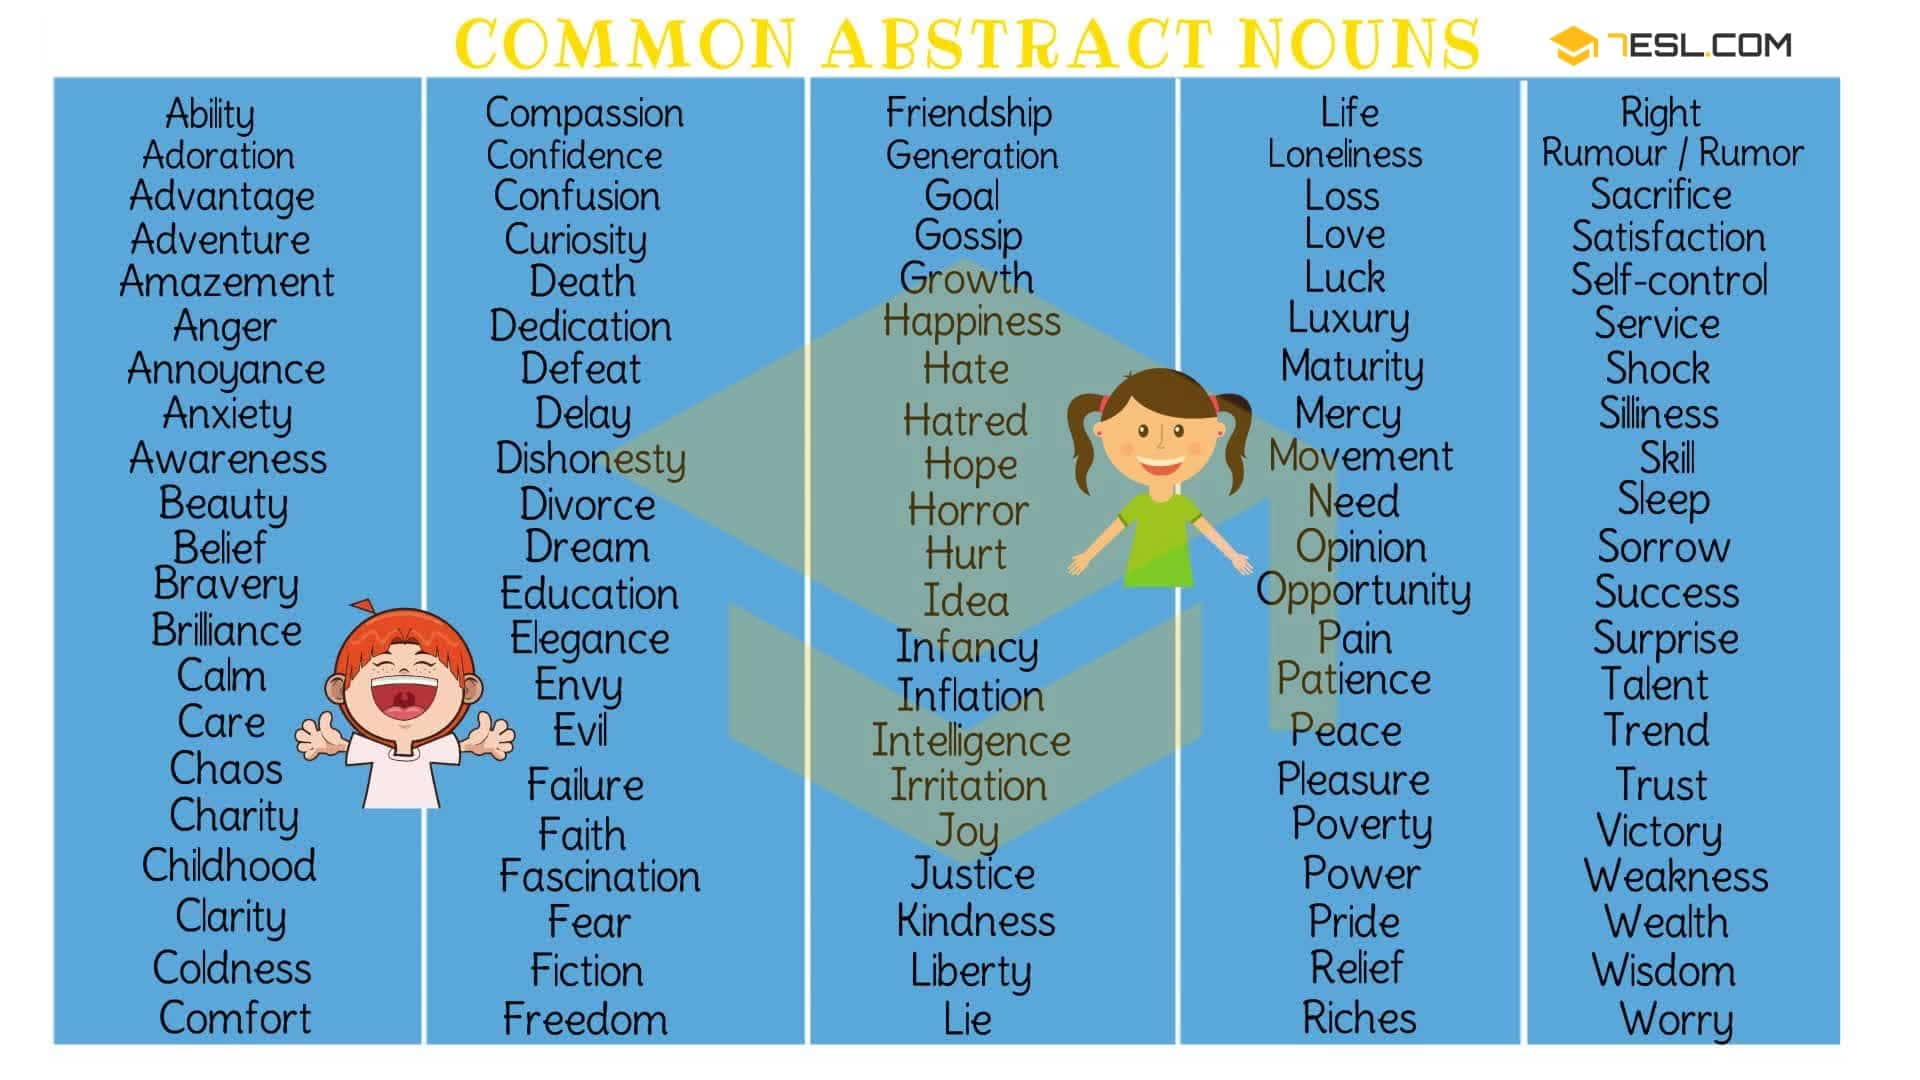 Abstract Nouns List in English (A-Z)